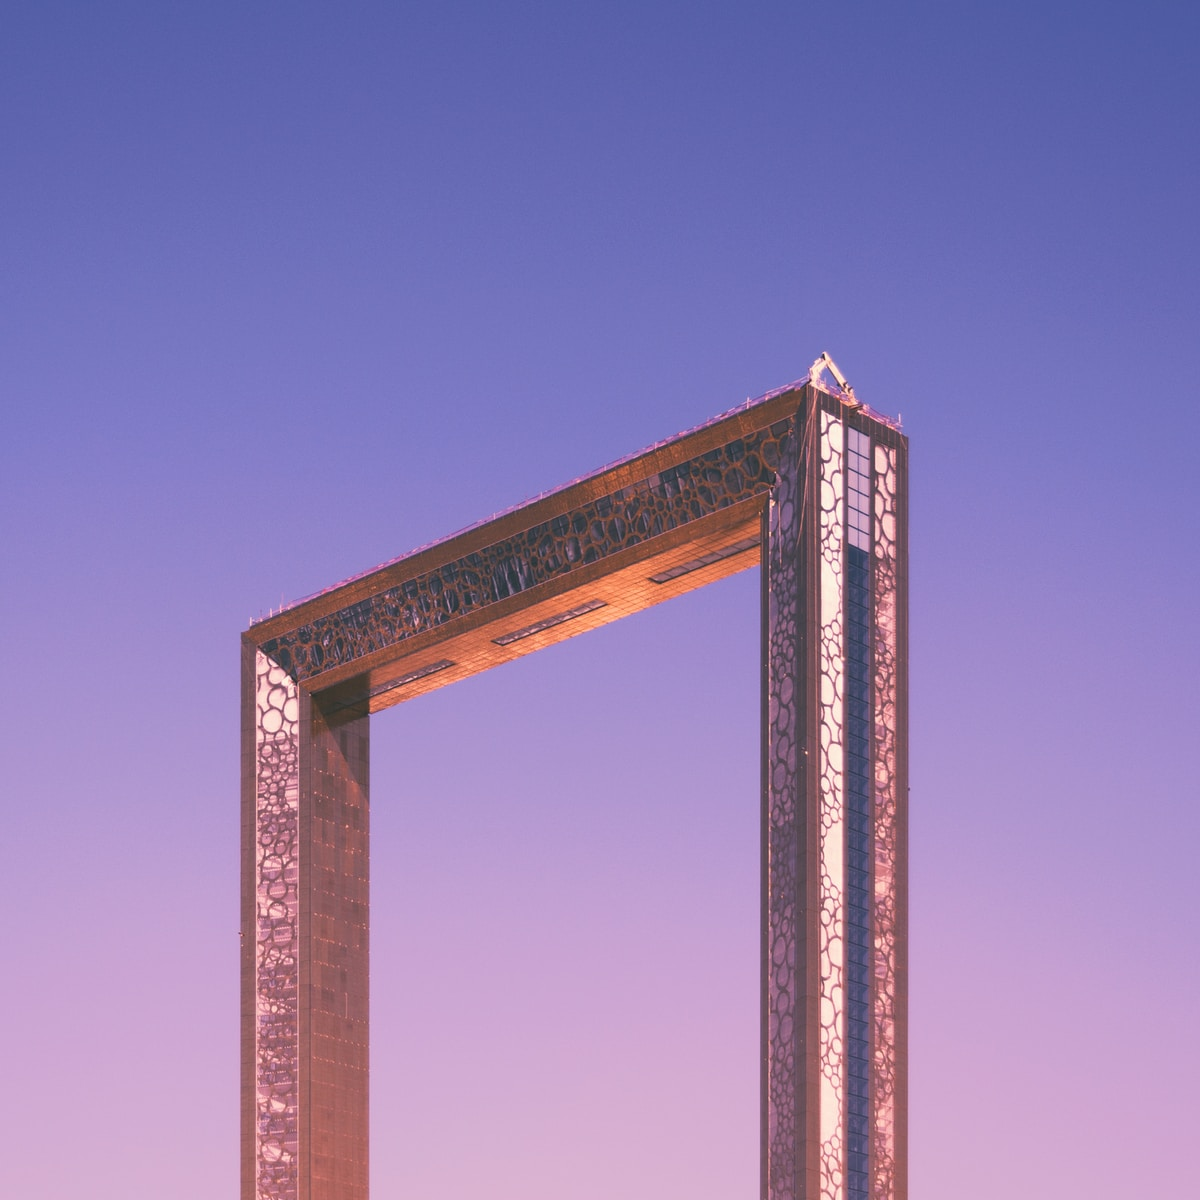 Dubai Frame - Places to Visit in Dubai